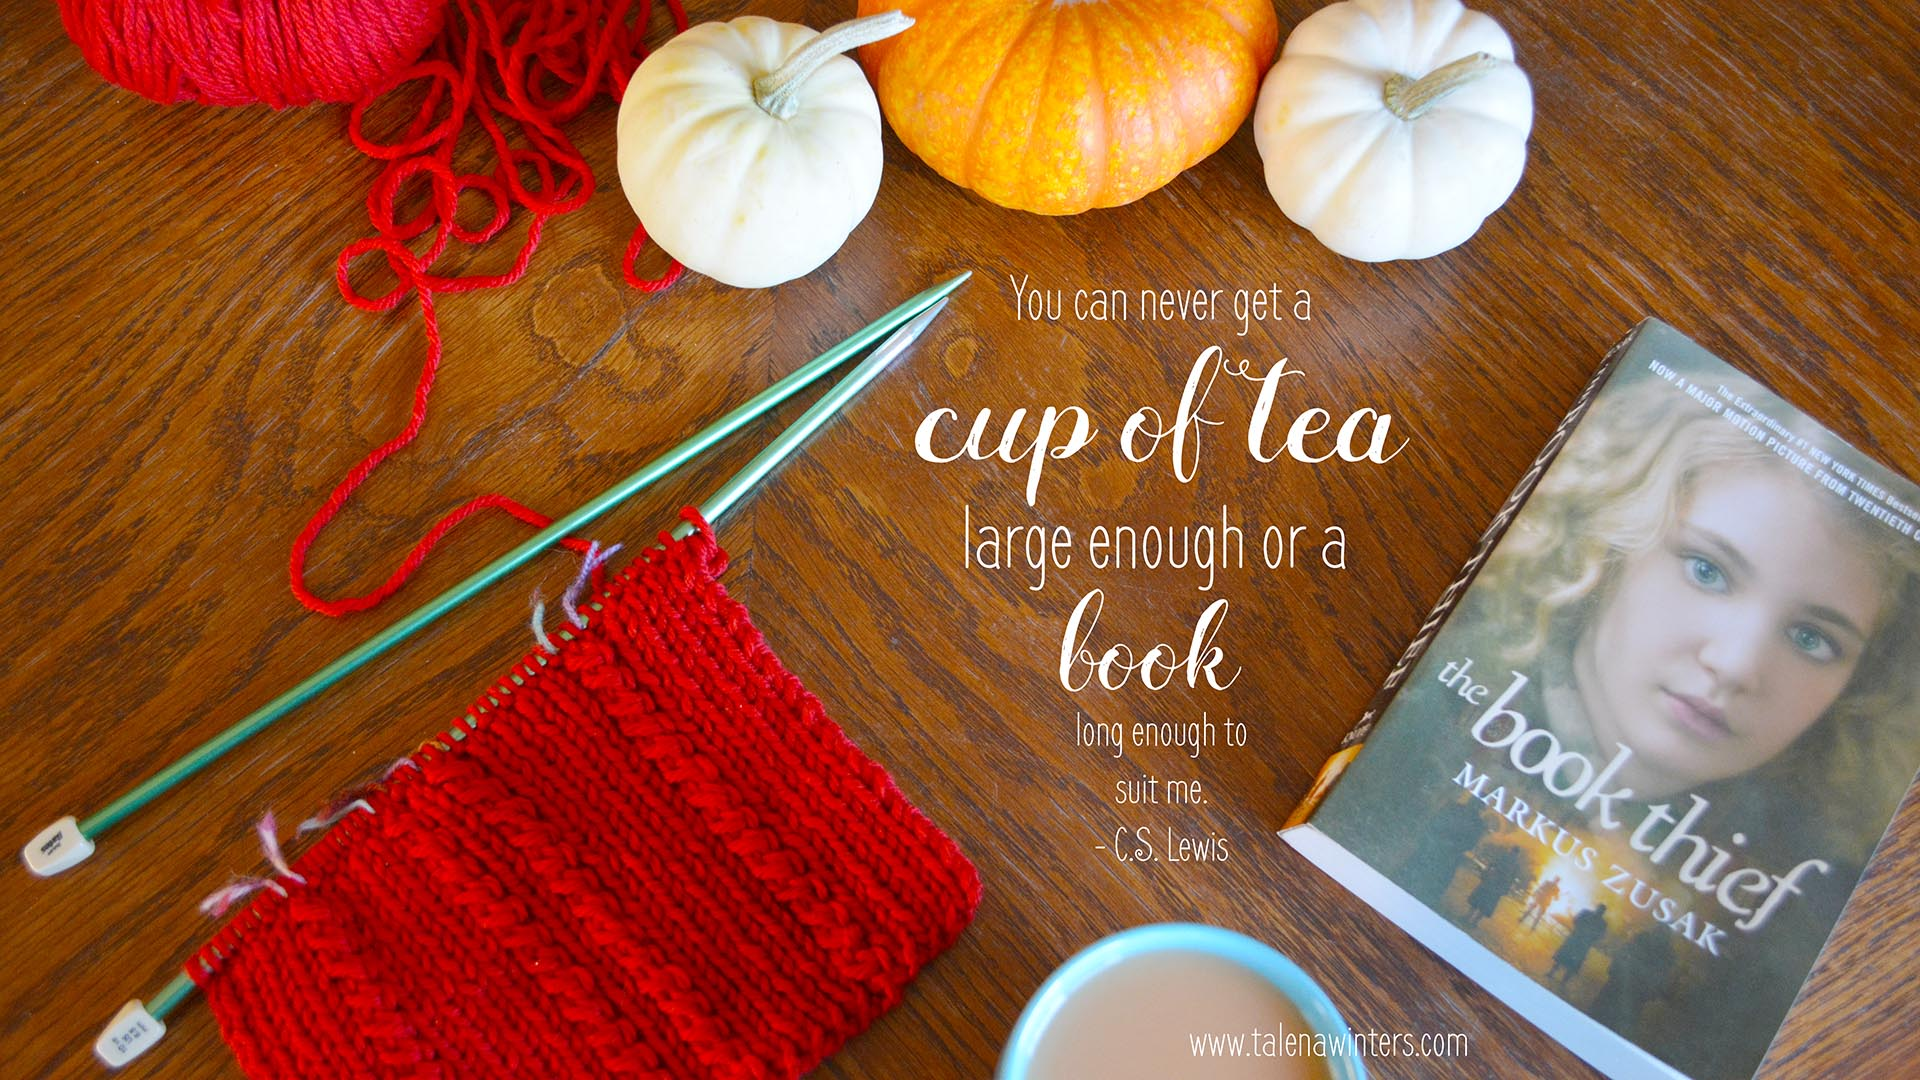 """You can never get a cup of tea large enough or a book long enough to suit me."" - C.S. Lewis. Desktop wallpaper. 1920x1080 resolution. Find more free inspirational desktop wallpapers at  www.talenawinters.com/desktop-wallpapers ."